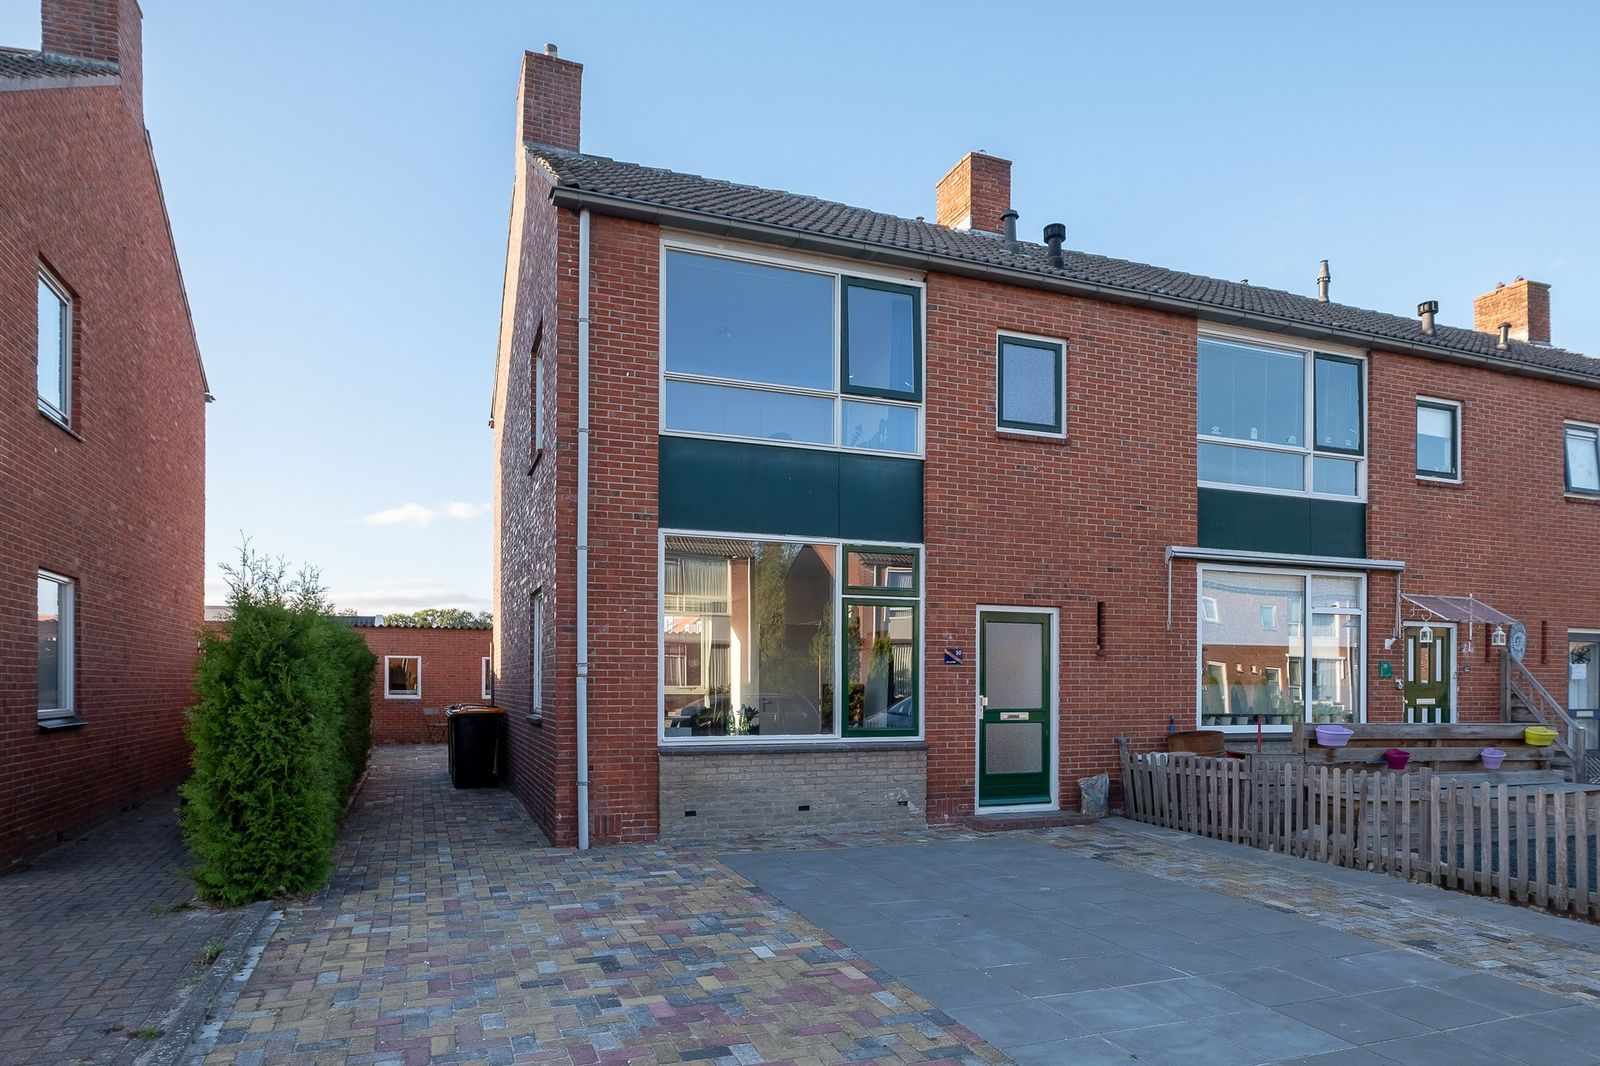 Prinses Beatrixstraat 30, Smilde